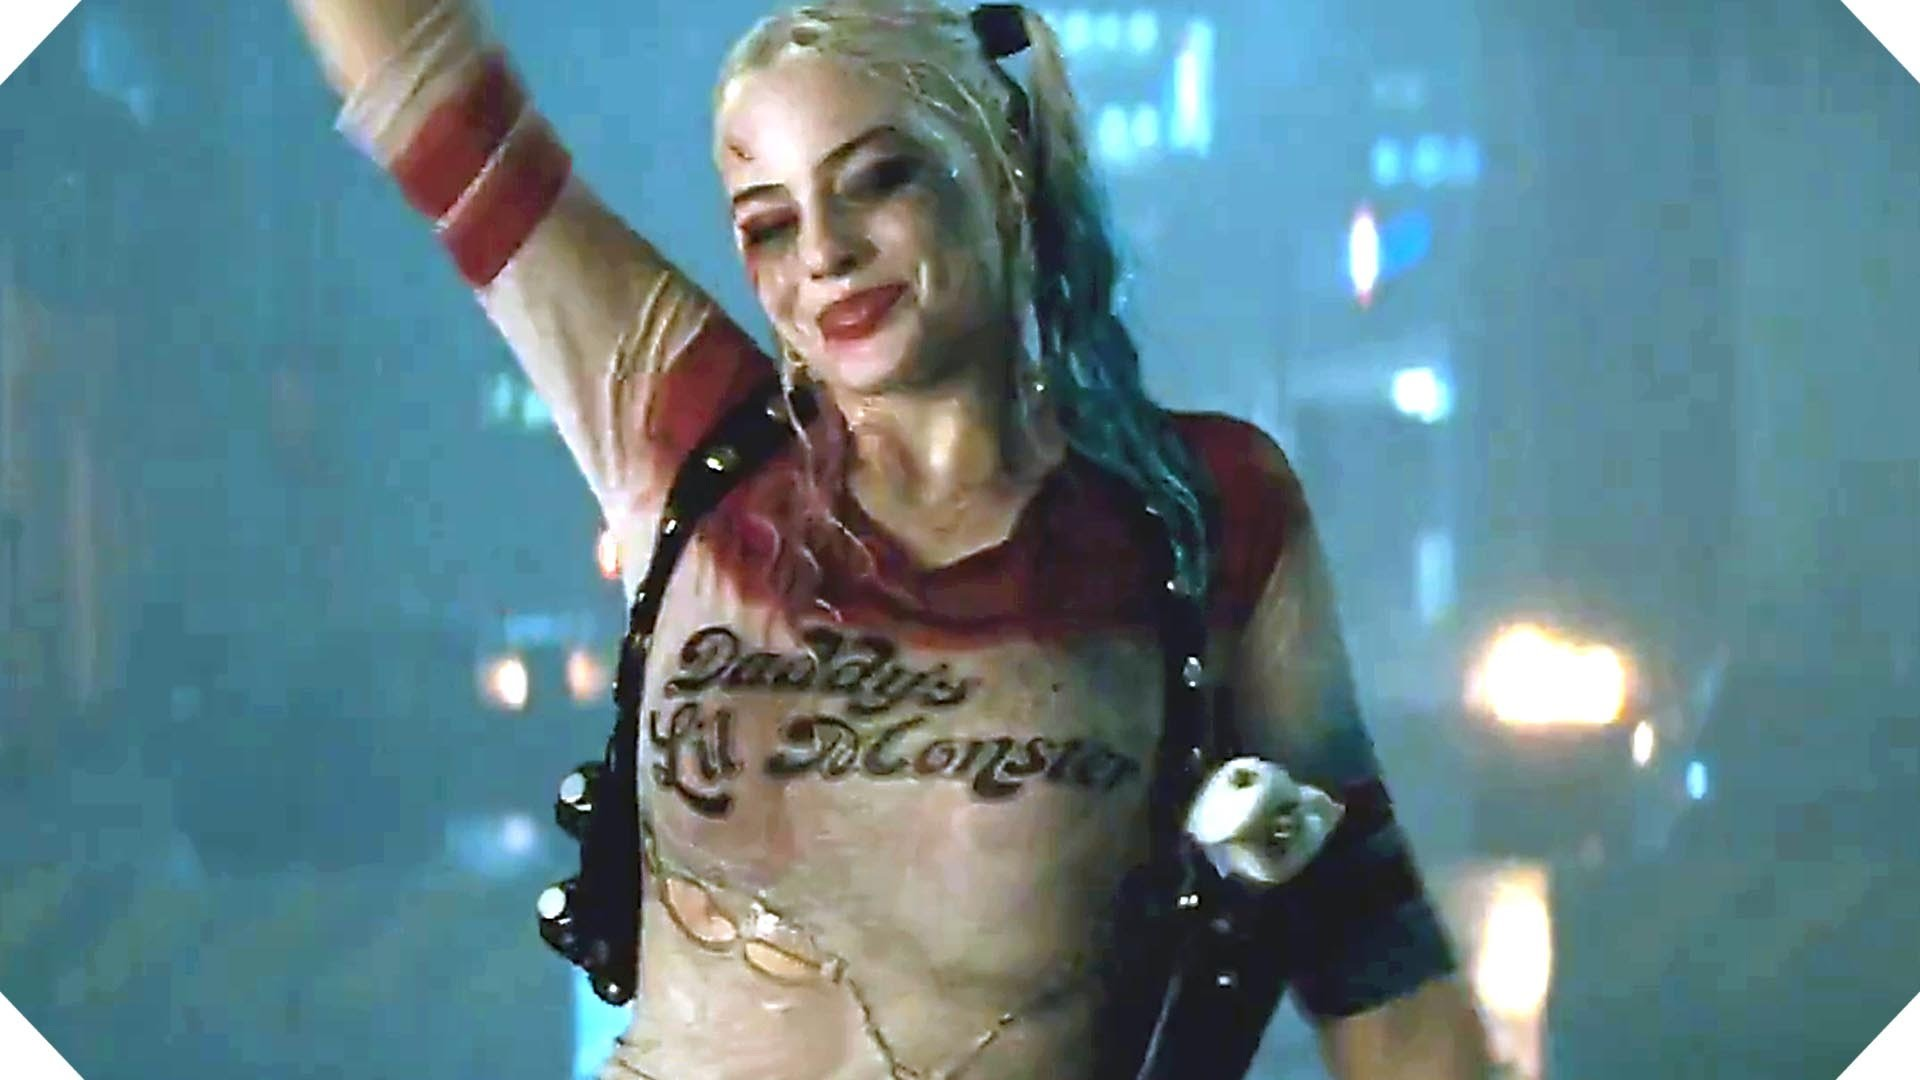 Margot Robbie As Harley Quinn Wallpaper Posted By Ethan Sellers